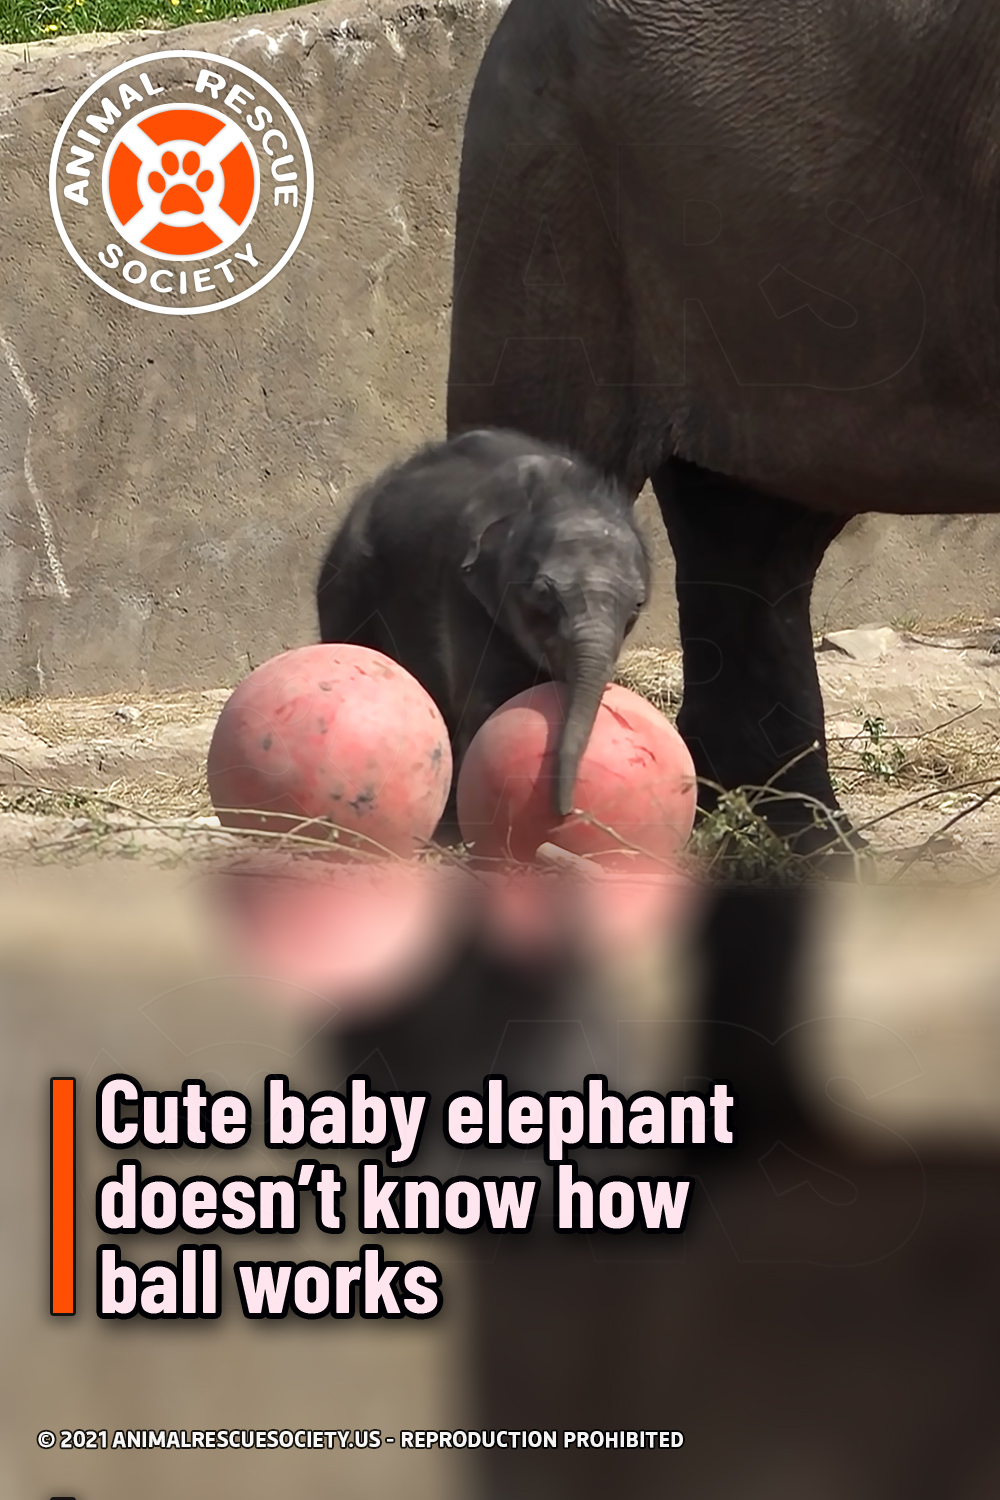 Cute baby elephant doesn't know how ball works